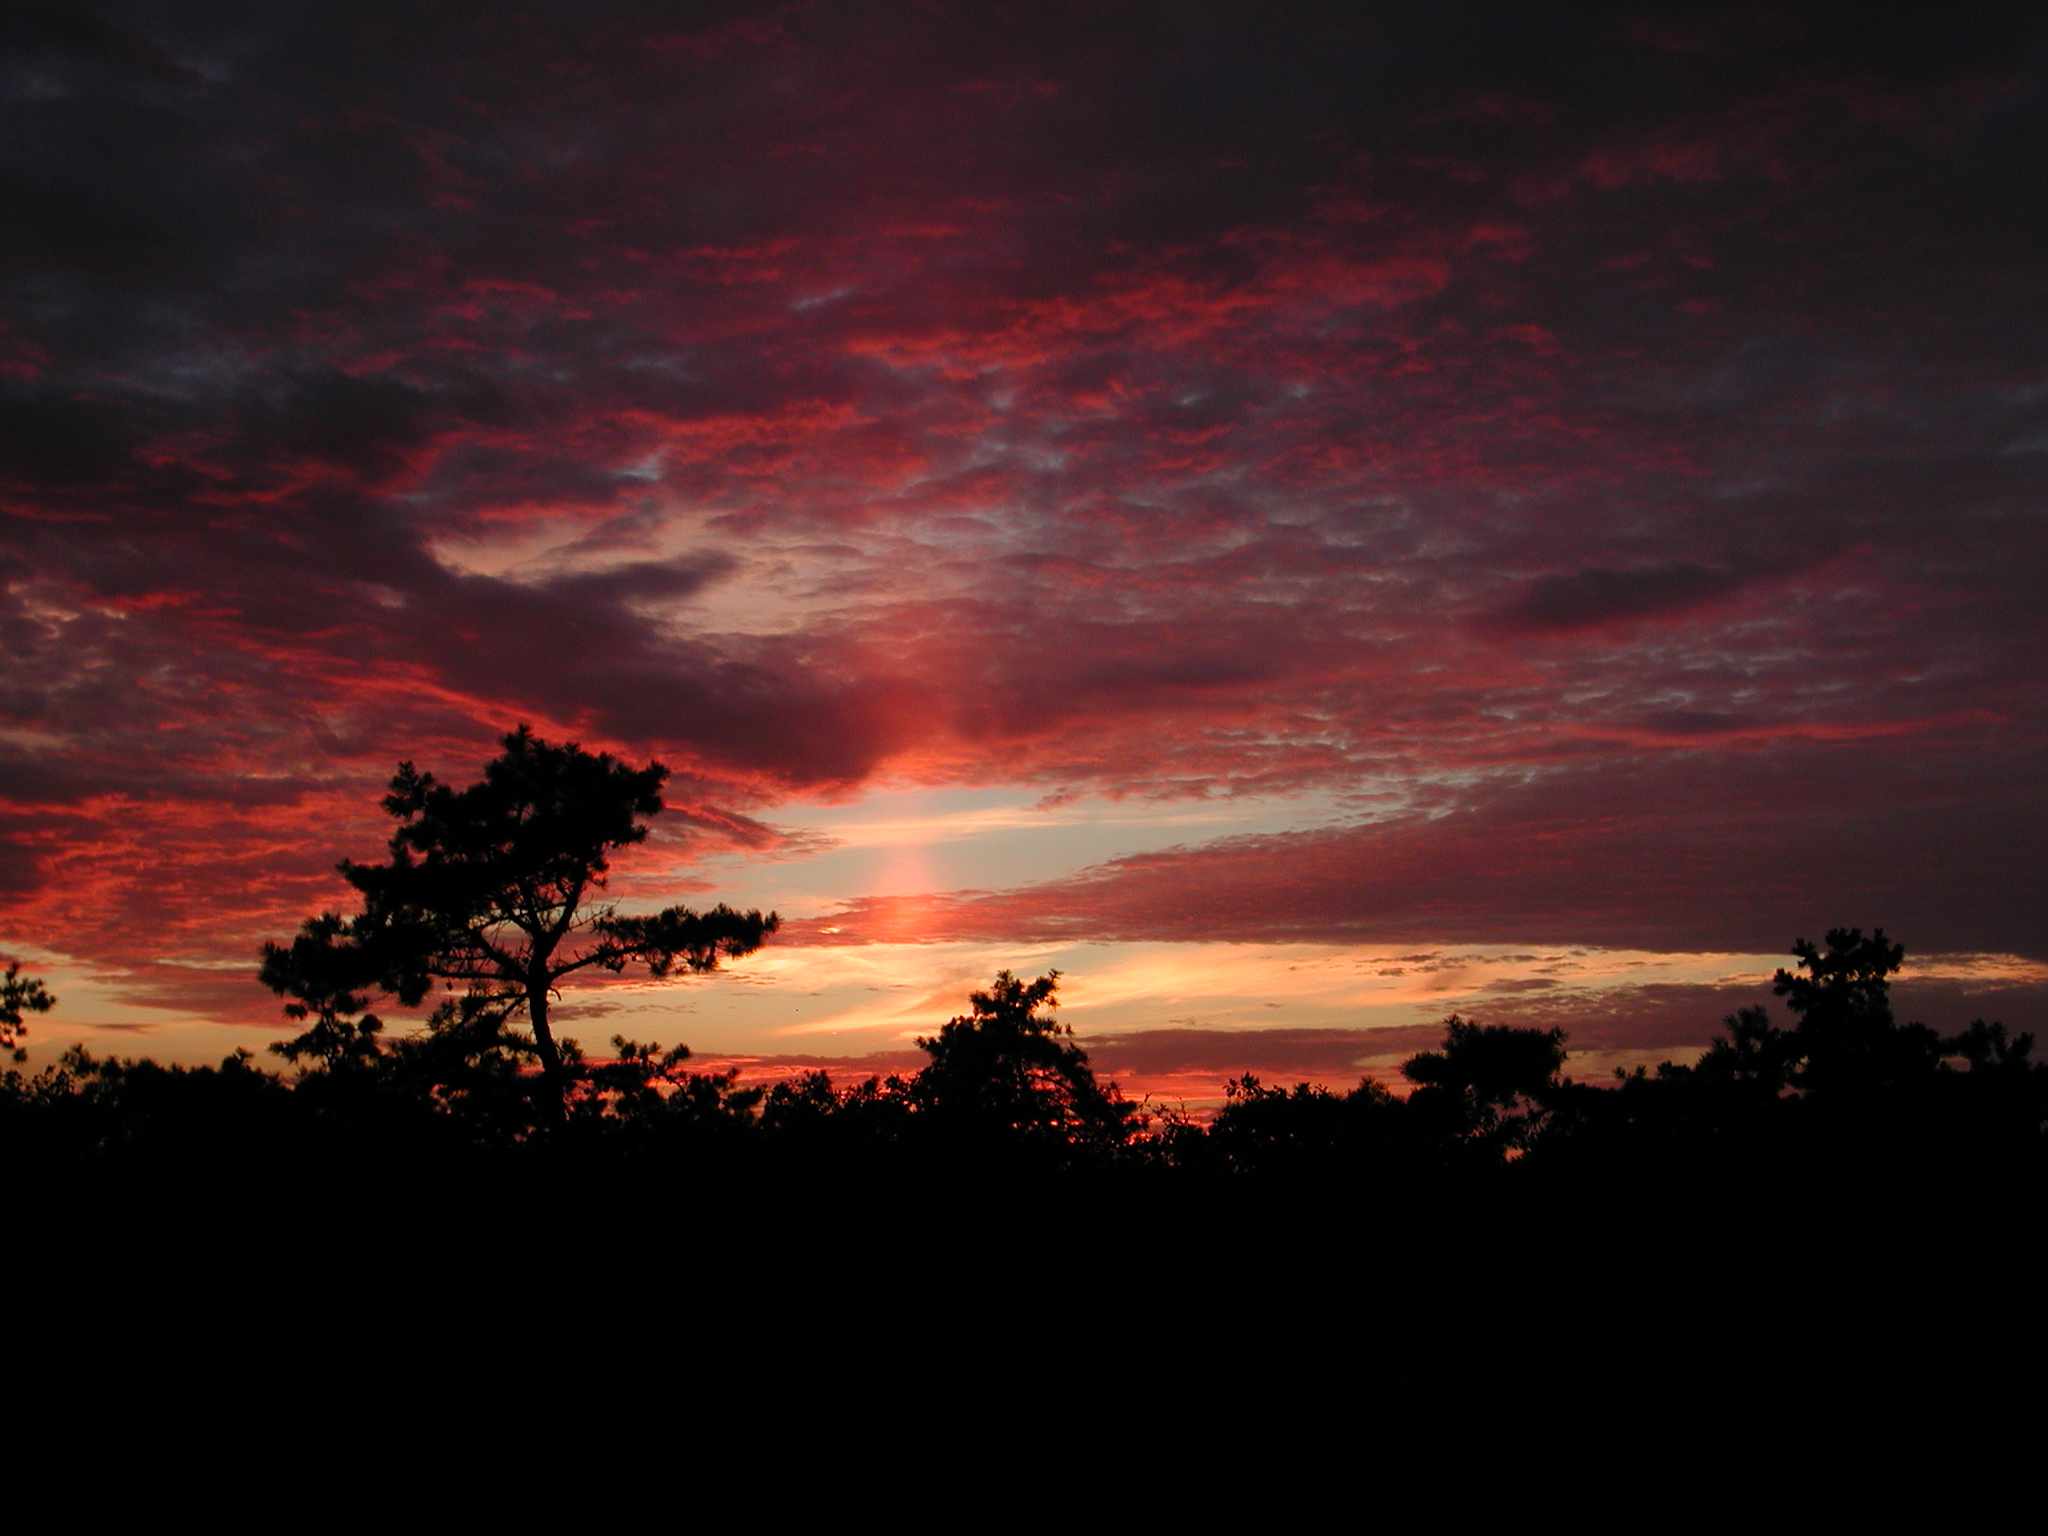 Sunset in the Long Island Pine Barrens